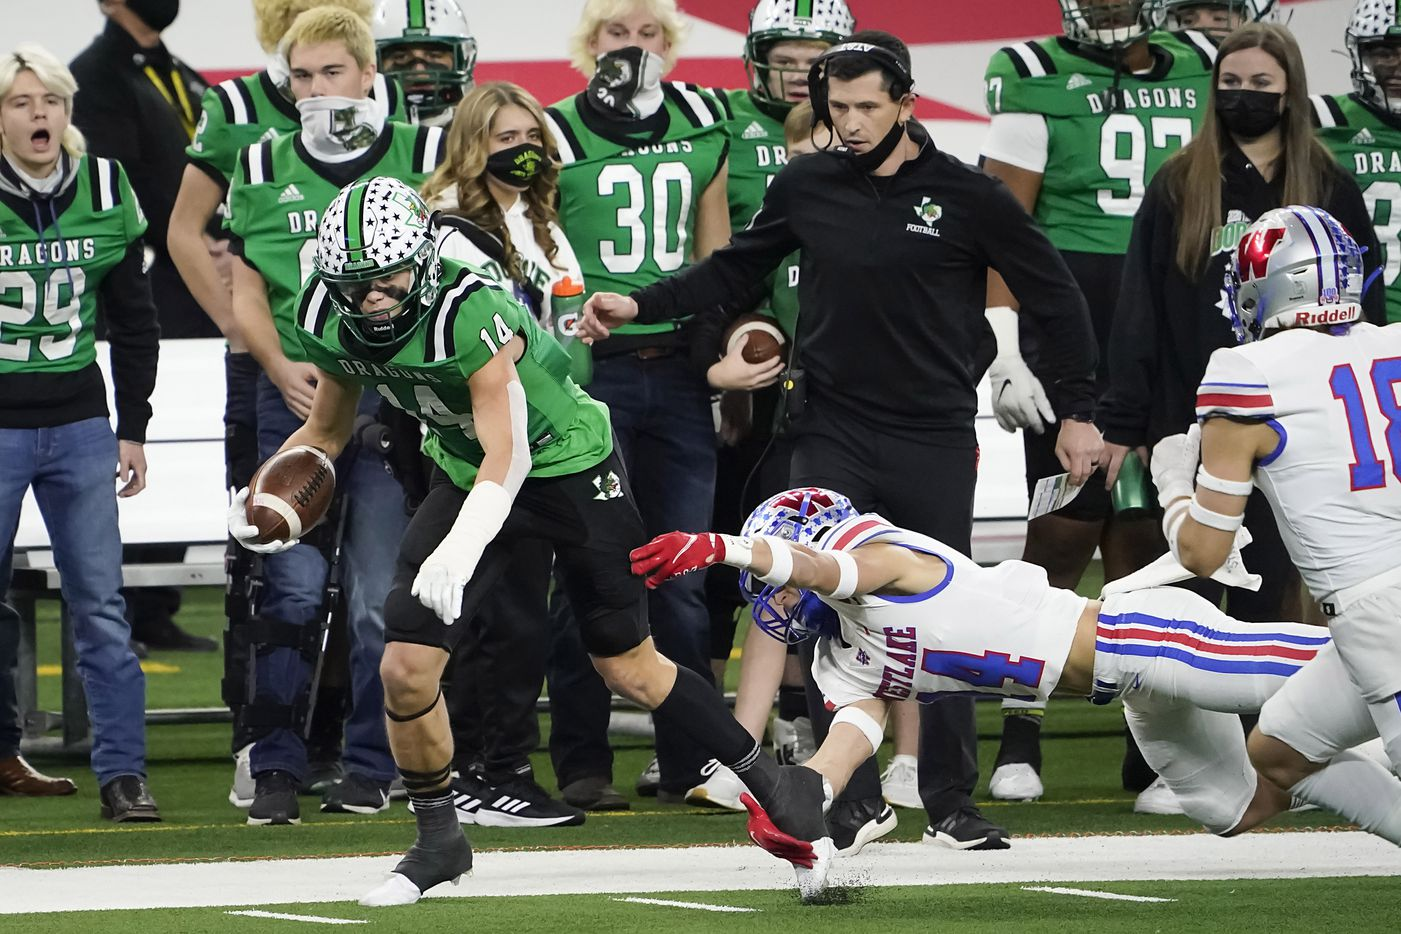 Southlake Carroll wide receiver Brady Boyd (14) is knocked out of bounds by Austin Westlake defensive back Michael Taaffe in front of Southlake Carroll head coach Riley Dodge during the first quarter of the Class 6A Division I state football championship game at AT&T Stadium on Saturday, Jan. 16, 2021, in Arlington, Texas.